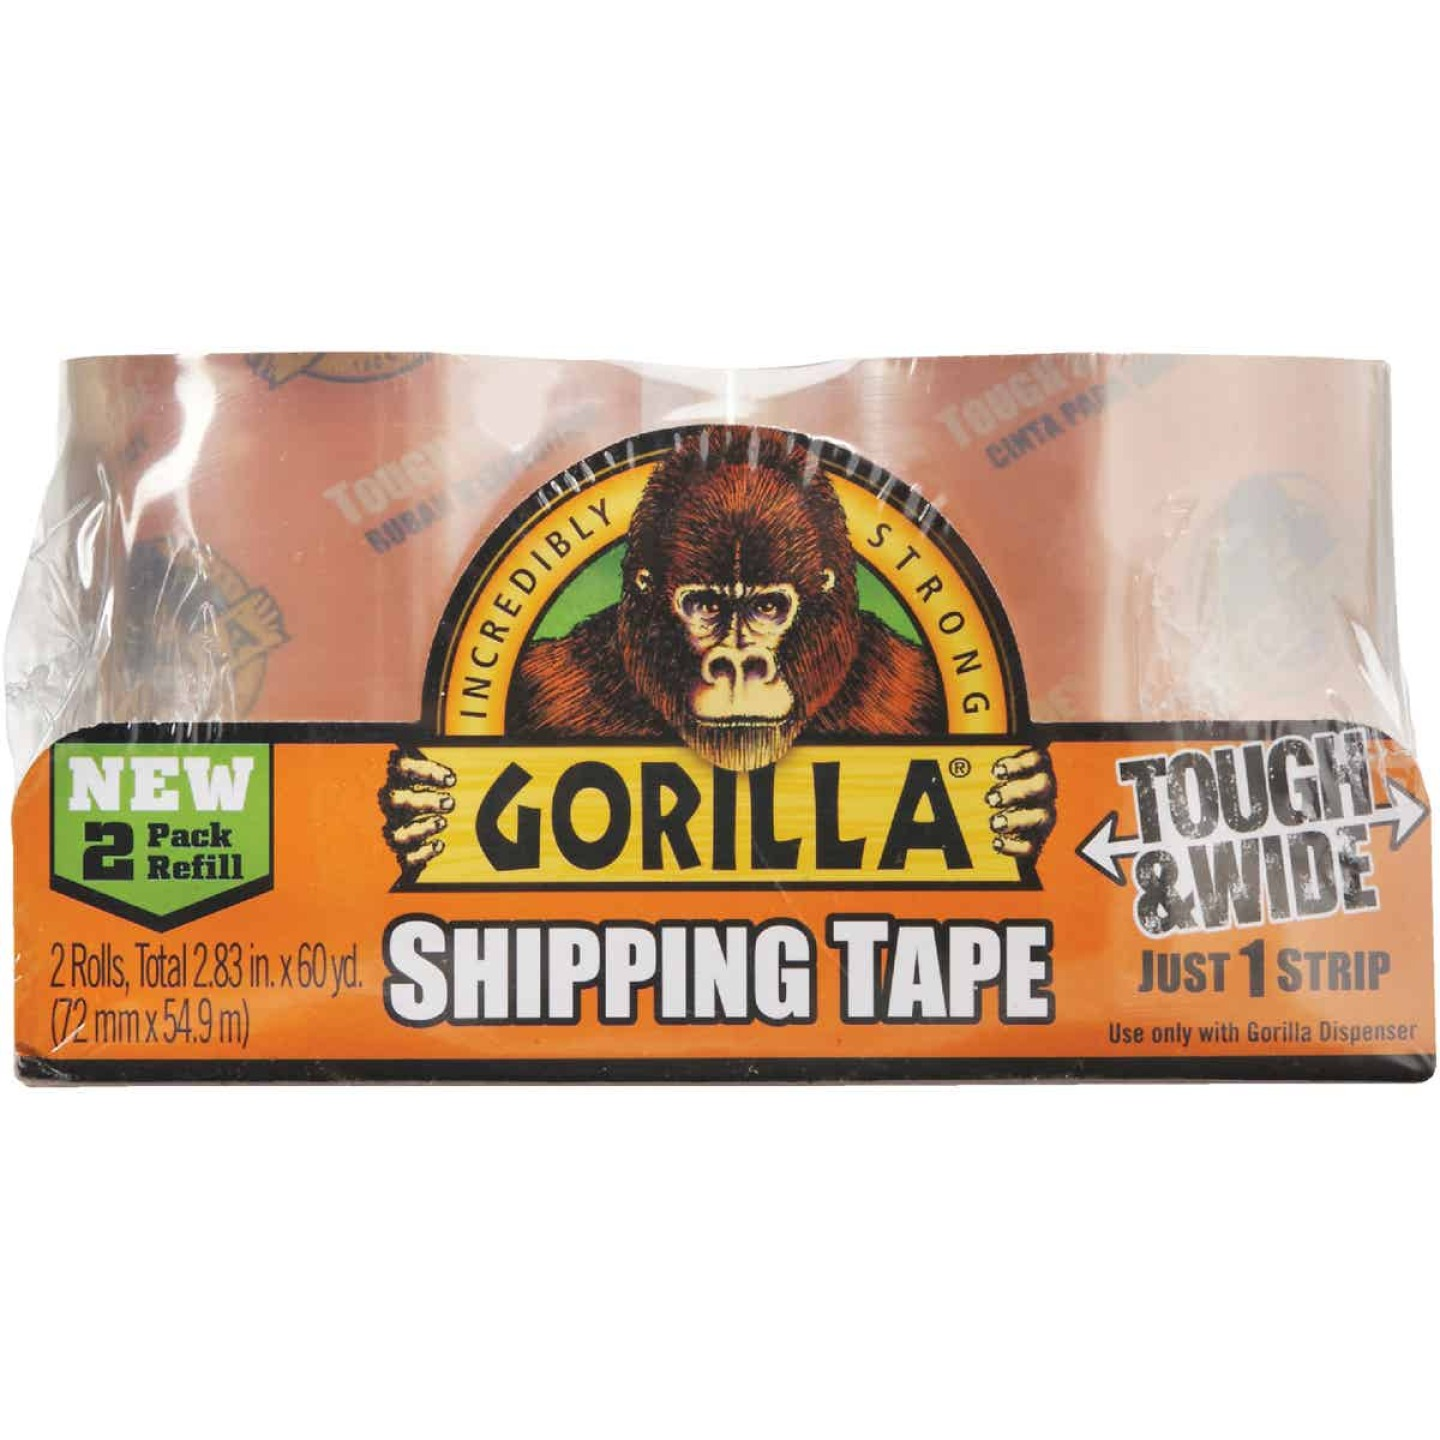 Gorilla 2.83 In. W. x 30 Yd. L. Clear Shipping Tape Refill (2-Pack) Image 2